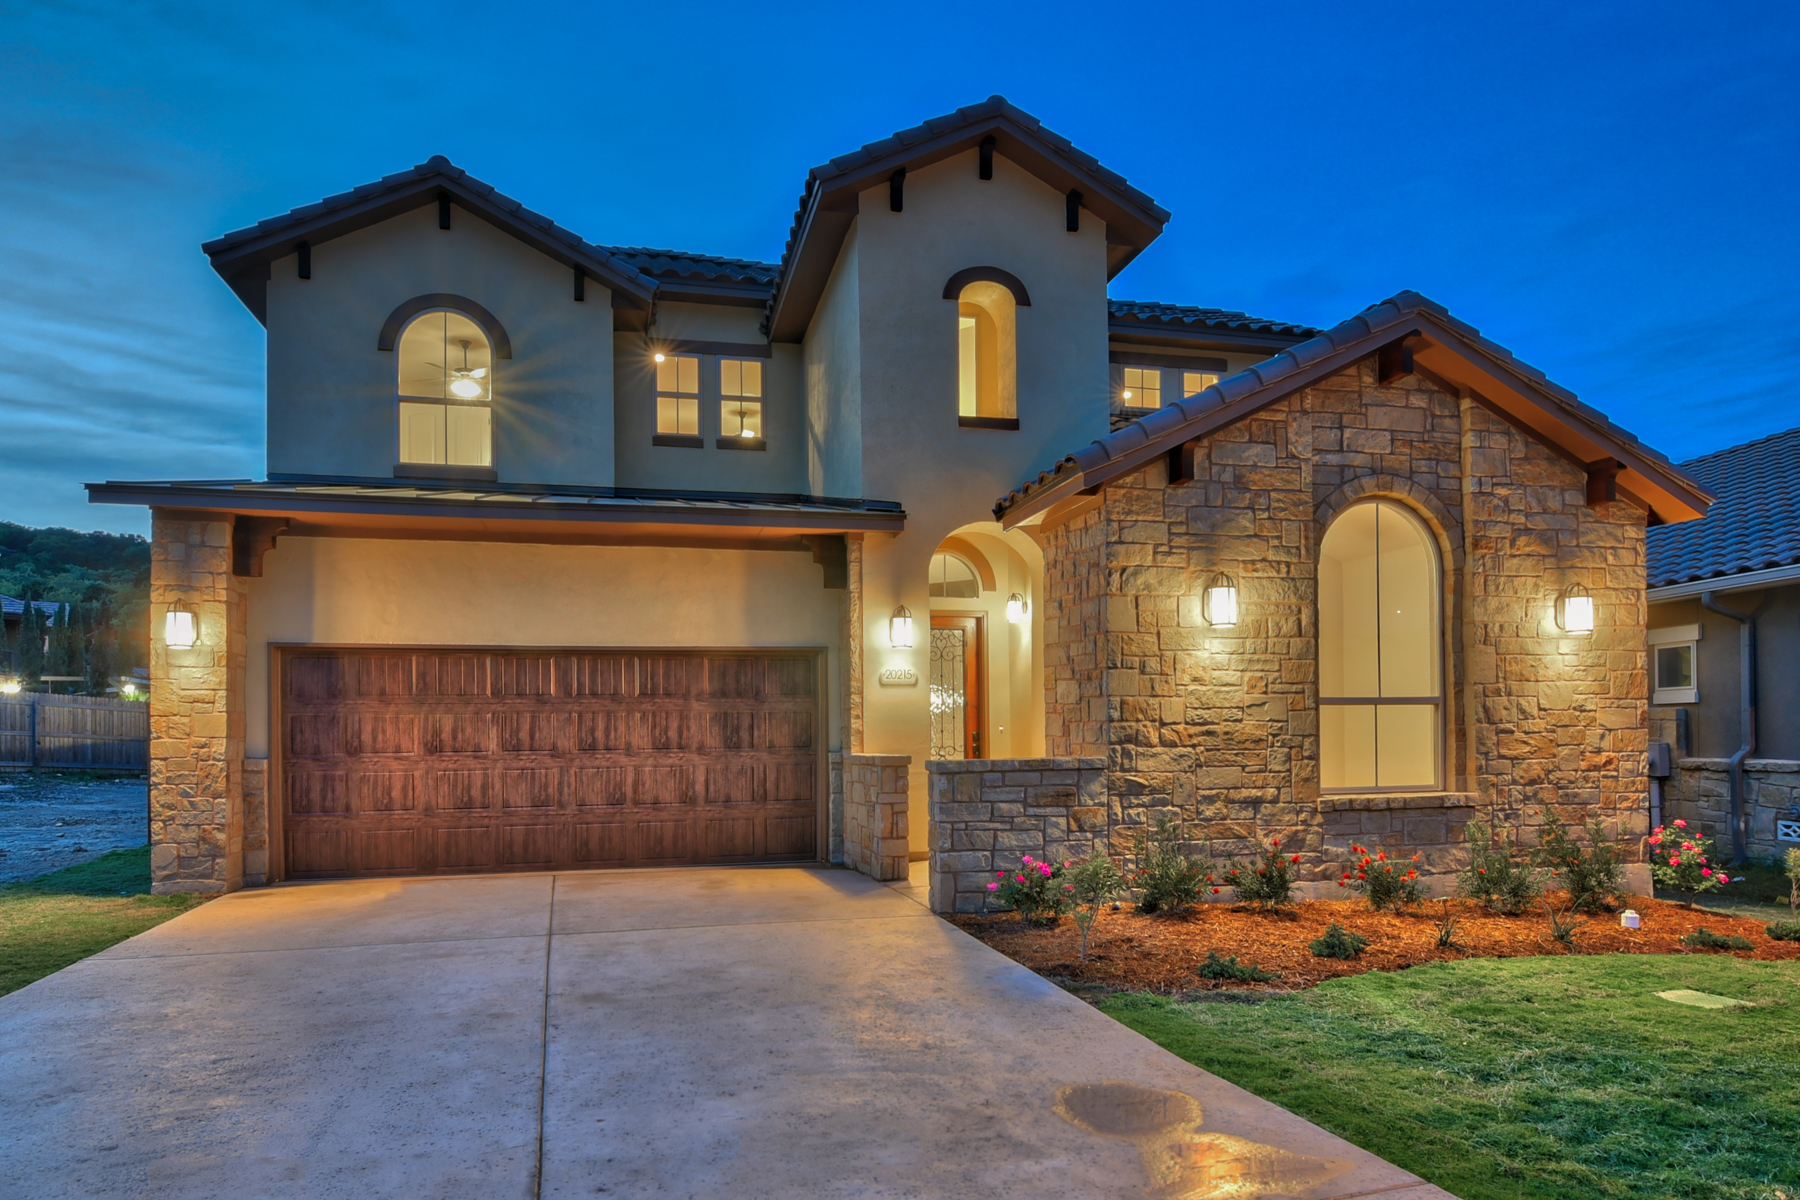 Single Family Home for Sale at Beautiful Gem in Cresta Bella 20215 Bella Glade San Antonio, Texas 78256 United States